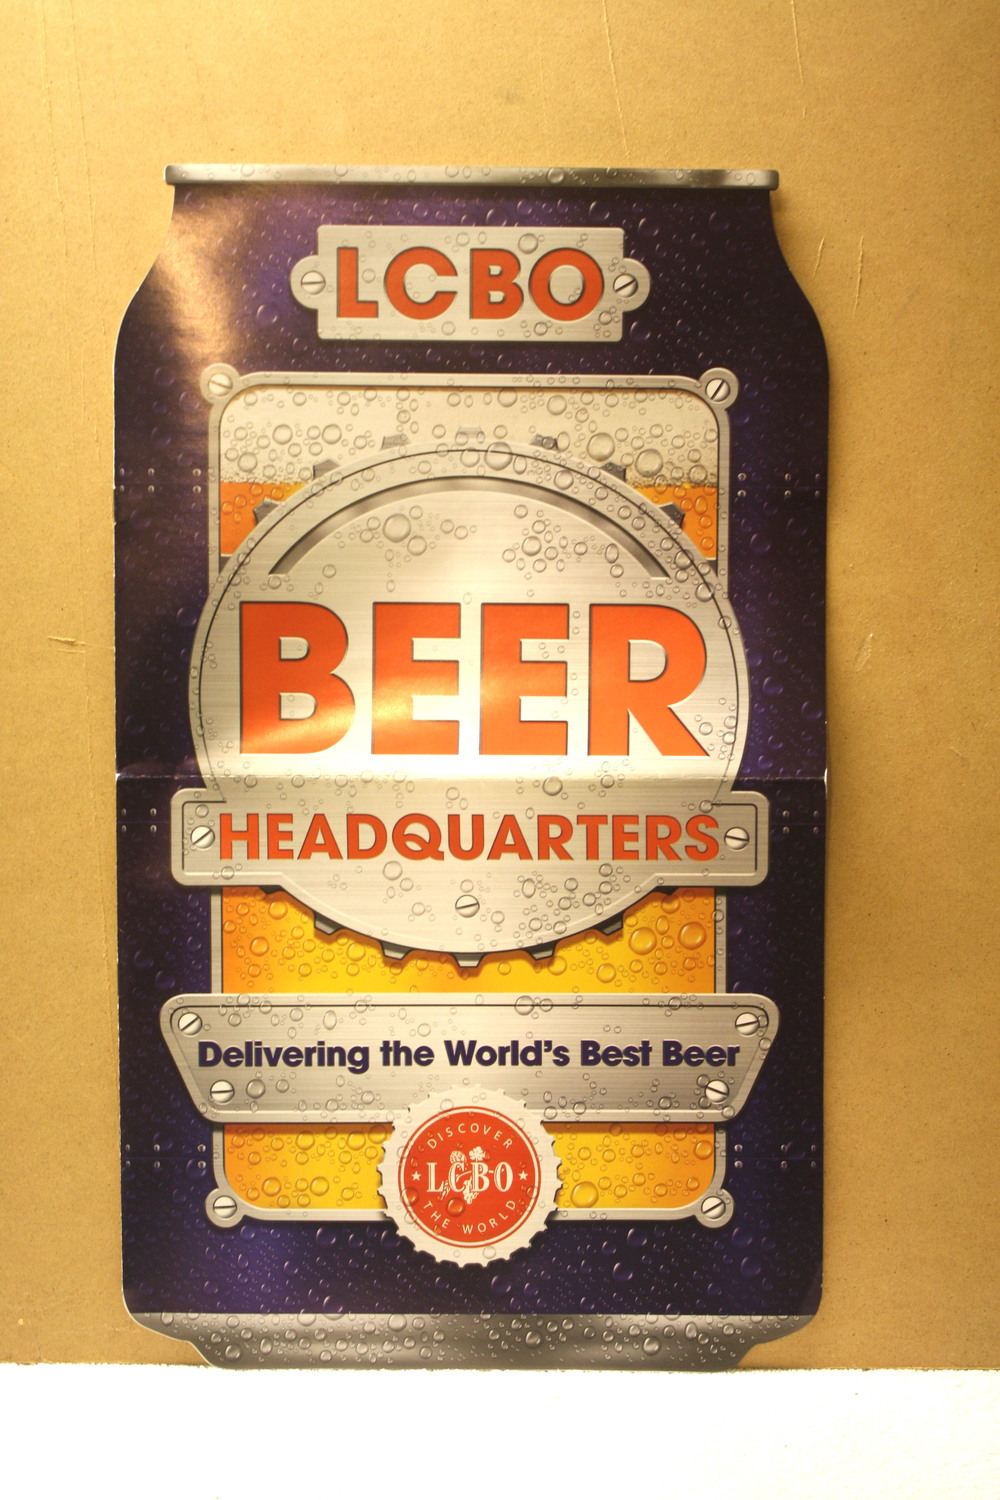 LCBO Beer Headquarters_Delivering the world's best beer (2011)